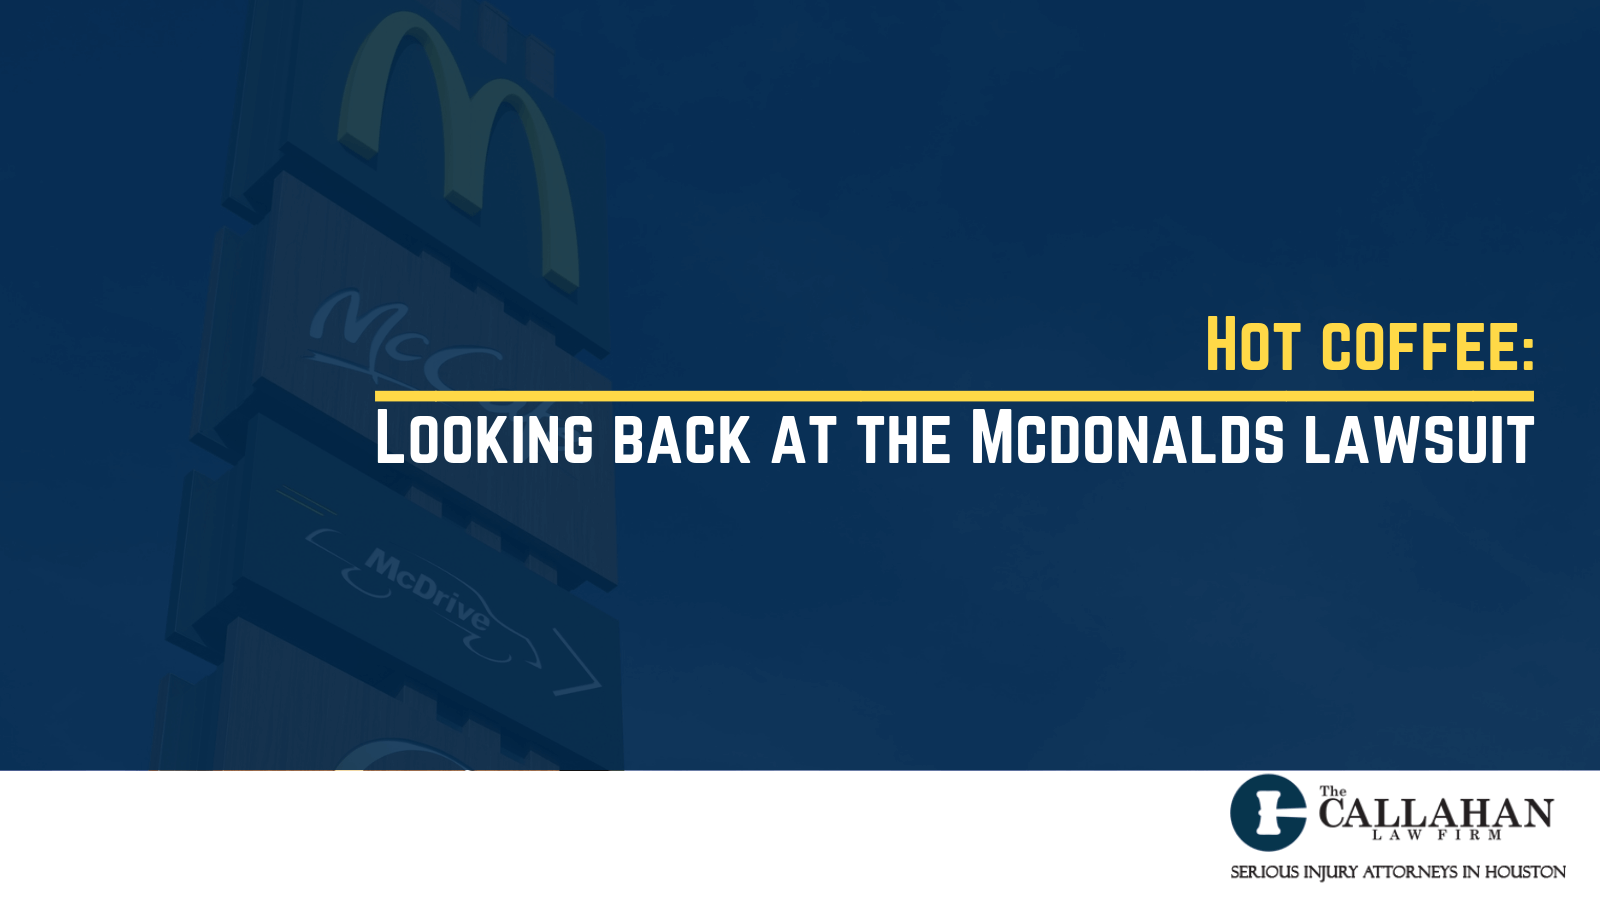 Hot coffee: Looking back at the Mcdonalds lawsuit